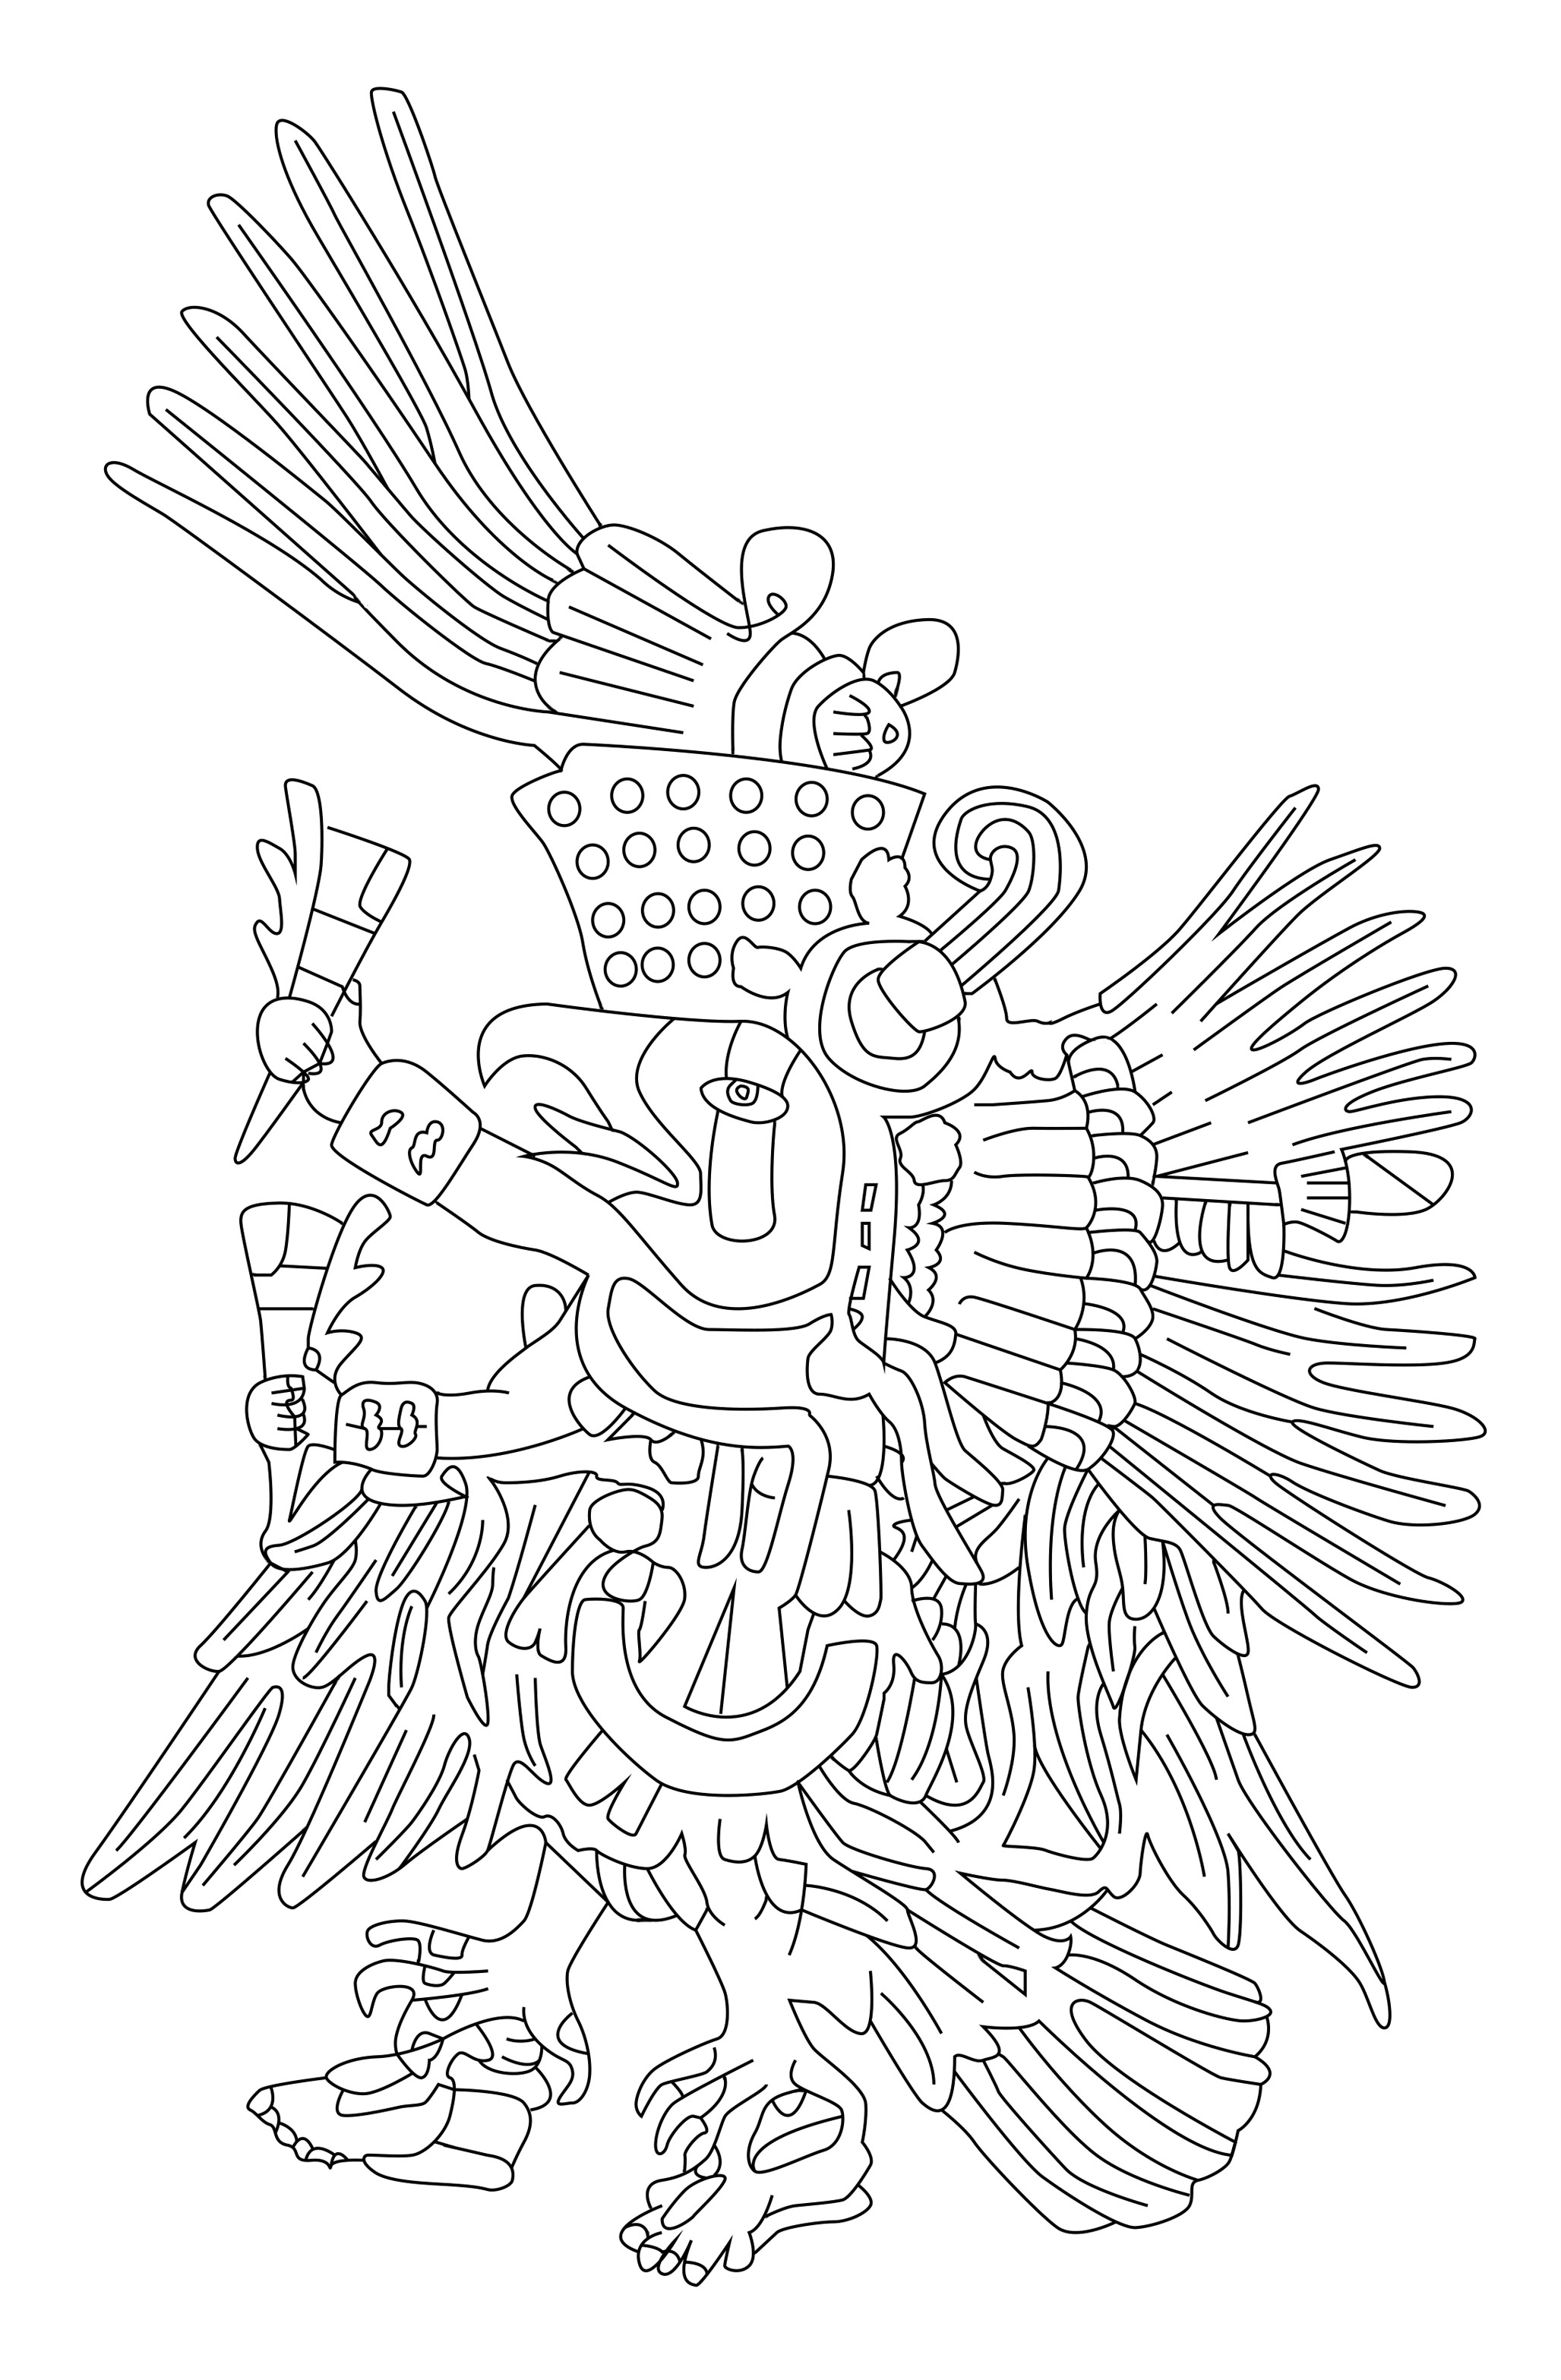 Mayans Amp Incas Coloring Pages For Adults Coloring Page